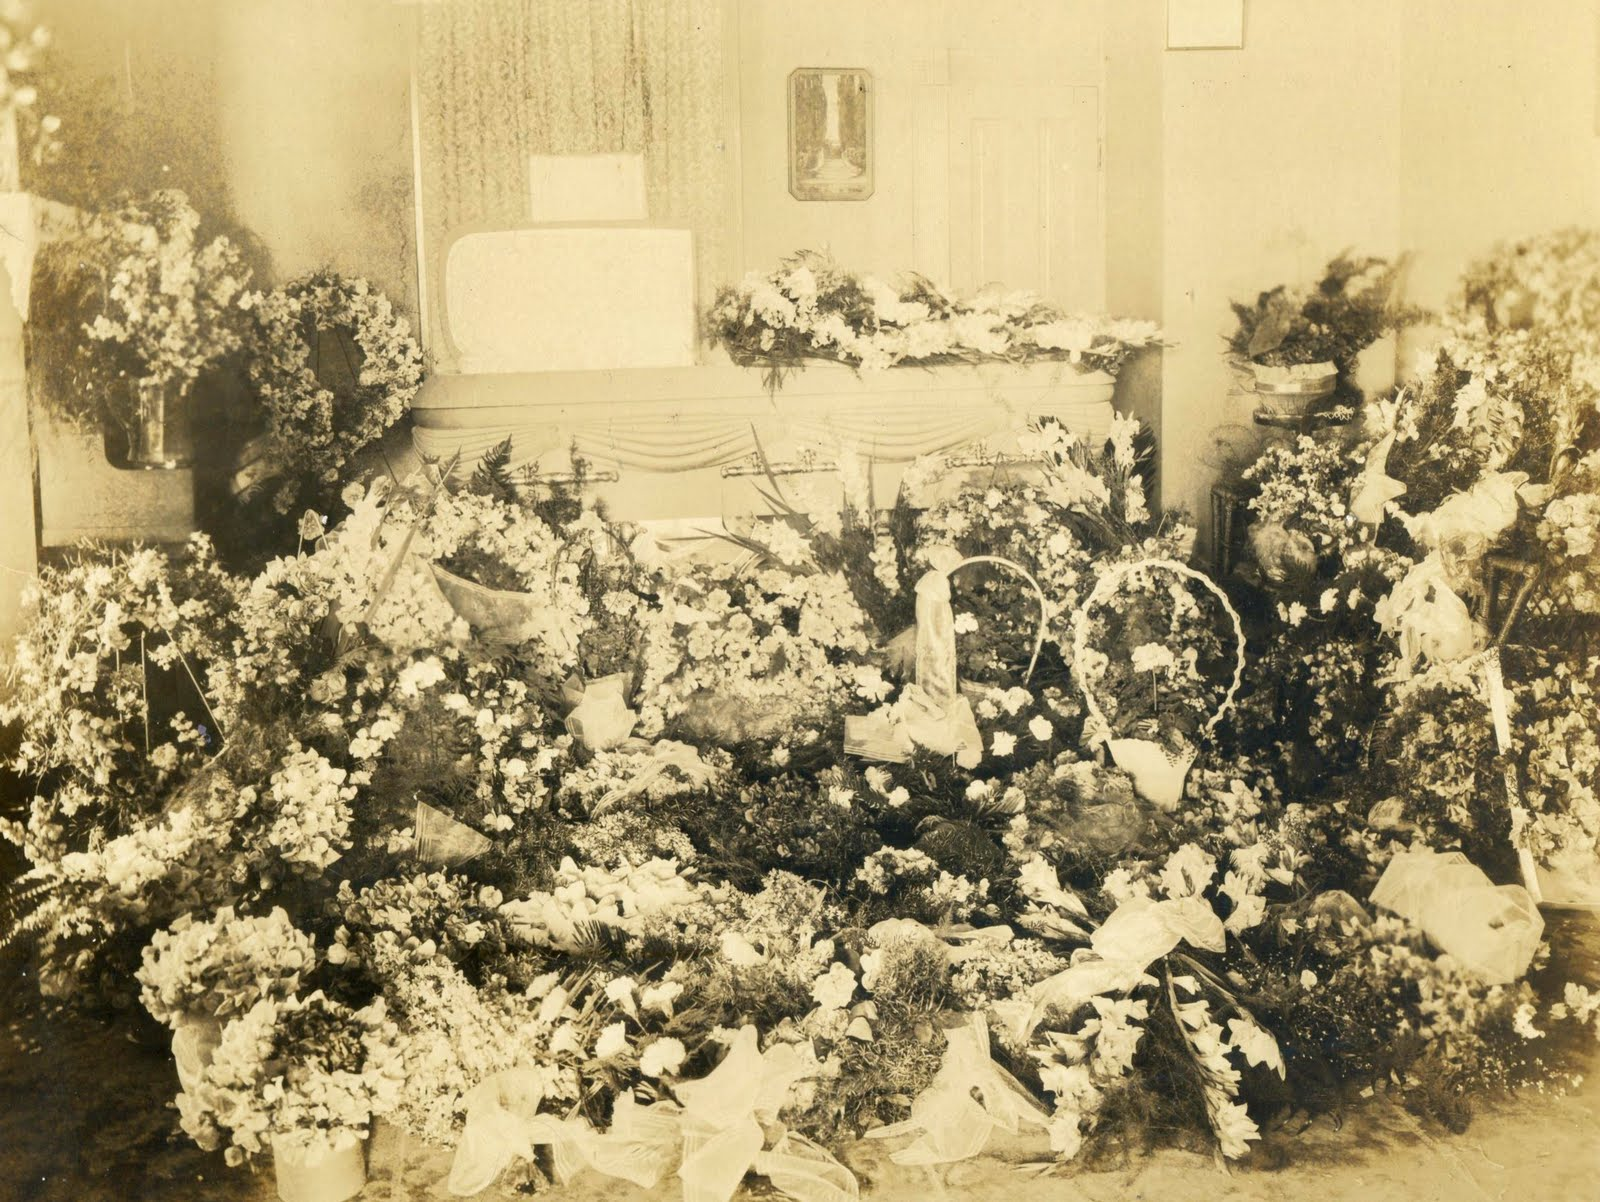 A land of deepest shade ostentatious funeral flower displays in 1910 he is a farmer but in 1920 he is shown as a marble worker at any rate he apparently had a host of friends and relatives who mourned his izmirmasajfo